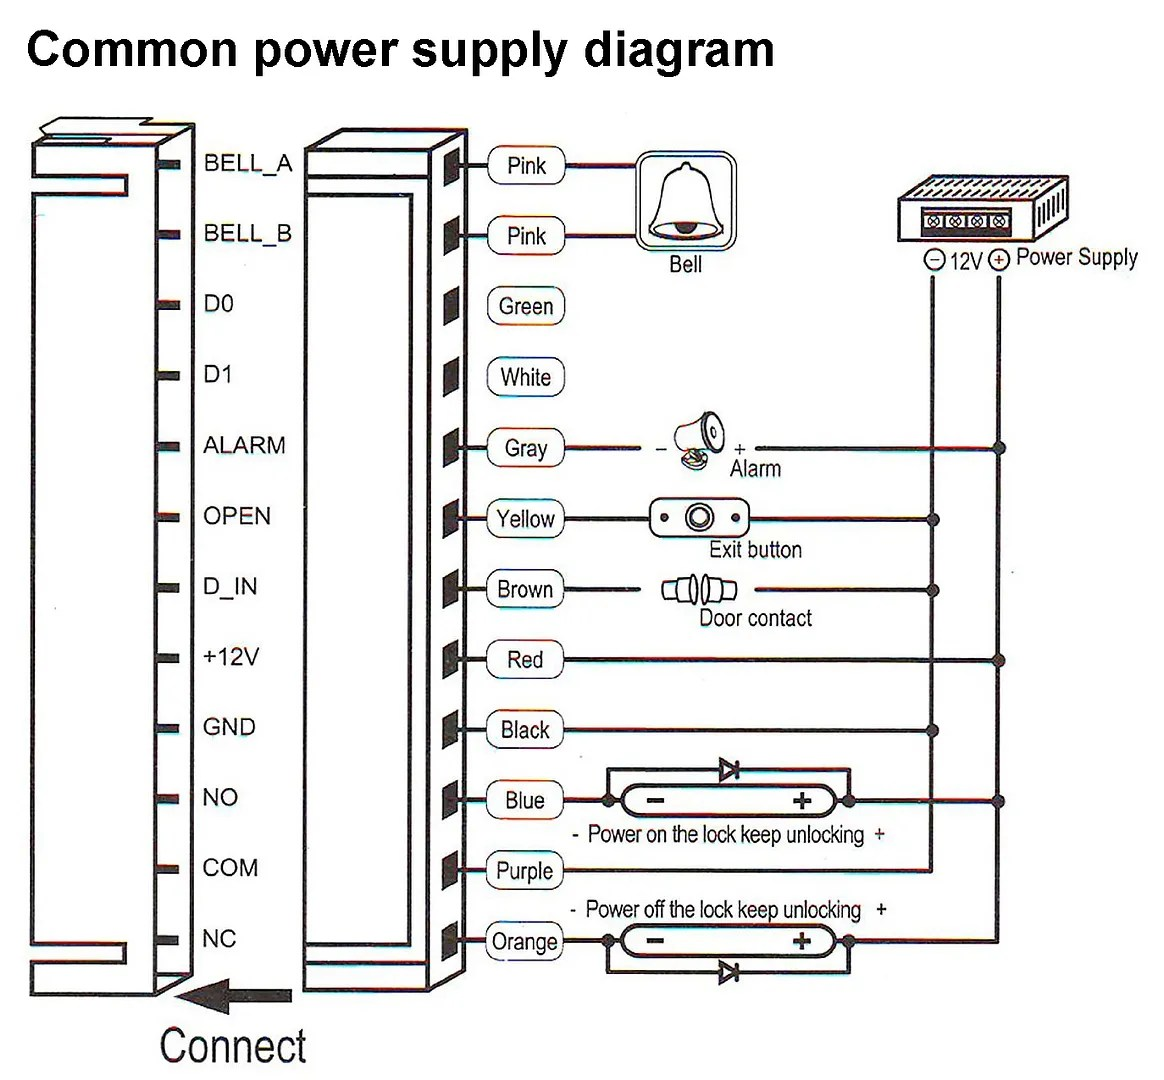 hight resolution of wiring diagram photo 7166xnkm8gl sl1500 zpstzpbhg6x jpg